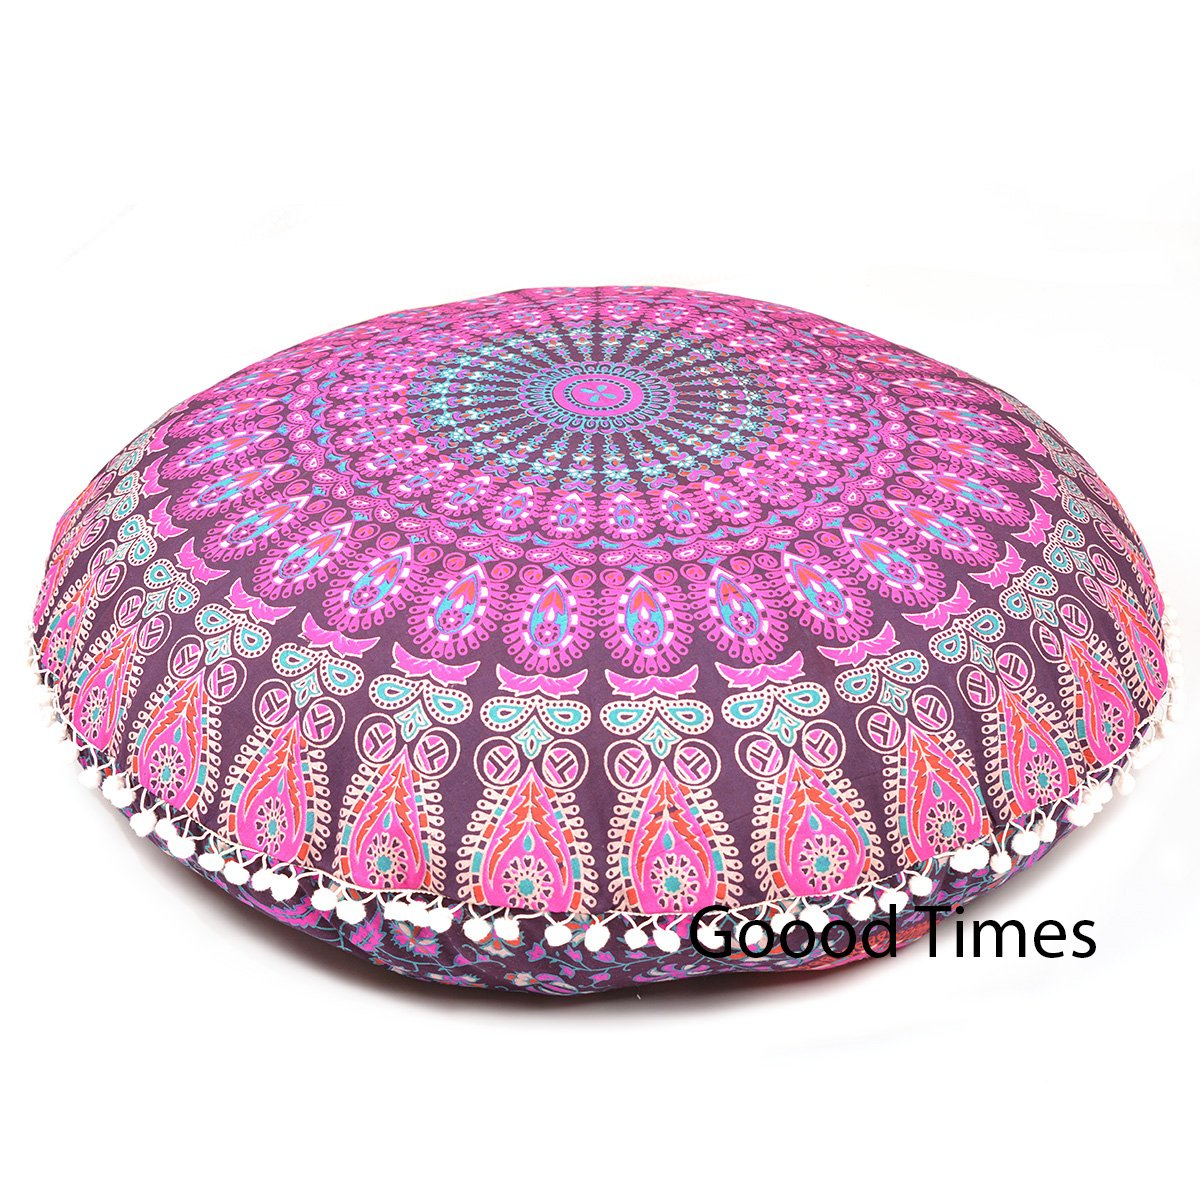 Goood Times Pink Throw Decorative Floor Pillow Cushion Cover Mandala - 32'' by Rajasthancreations